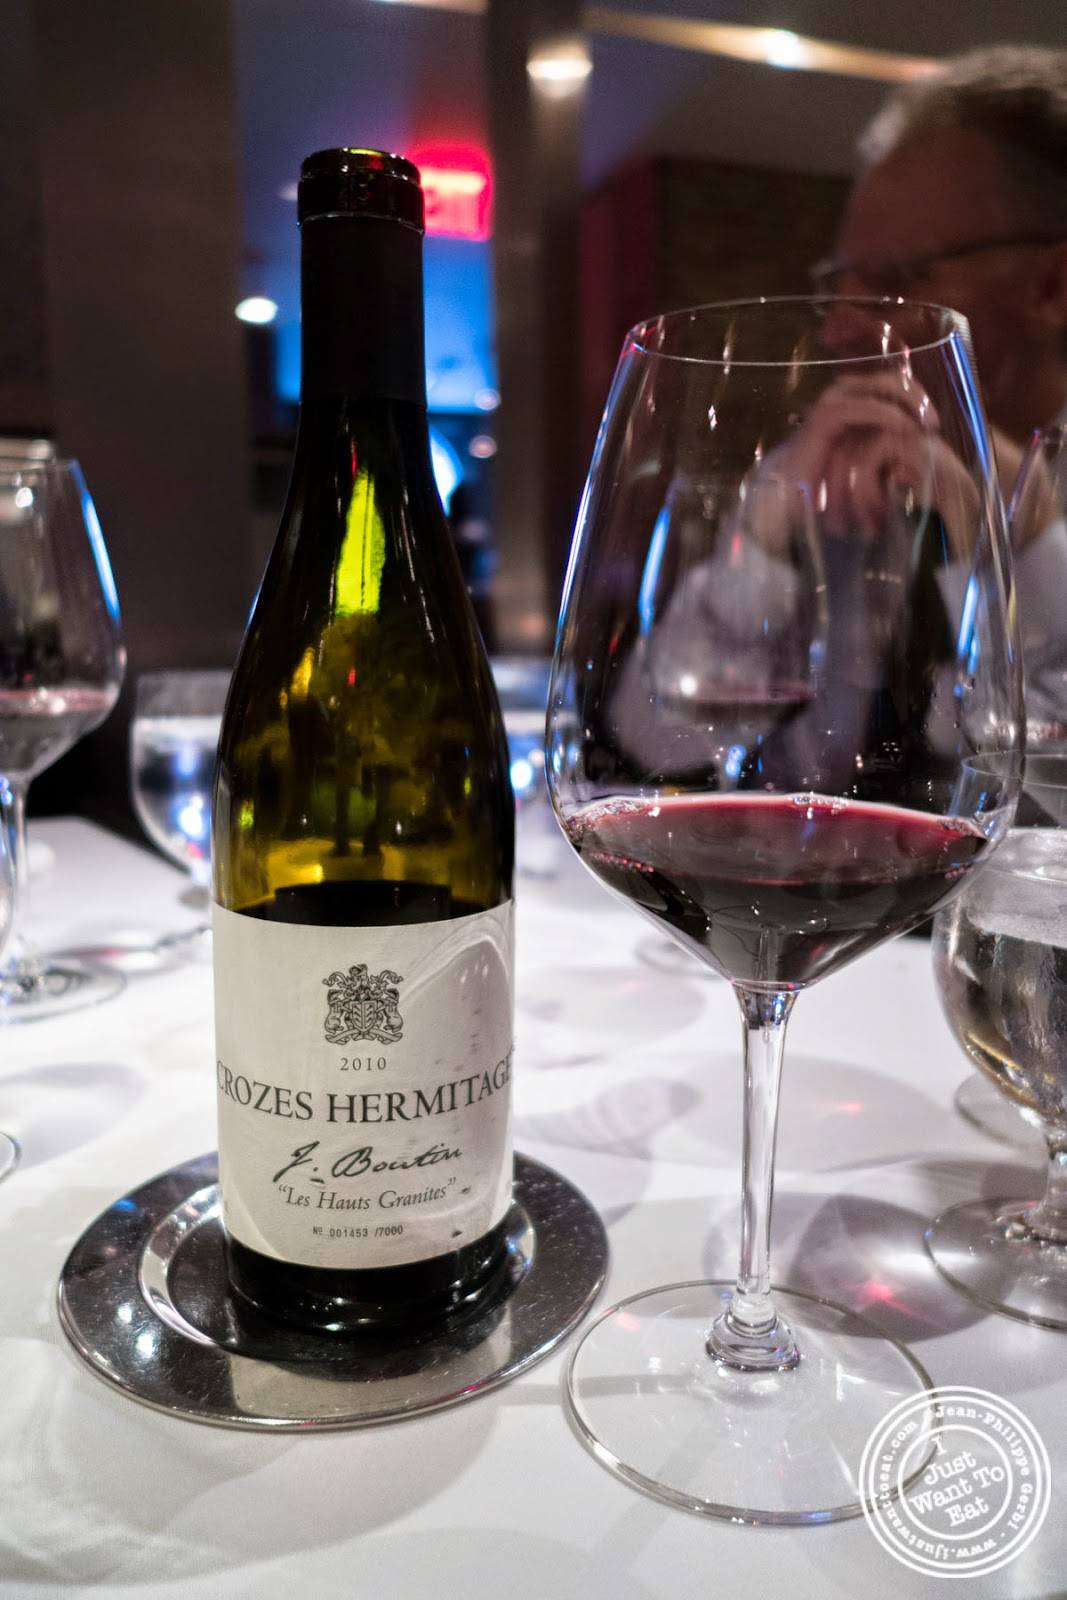 image of Crozes Hermitage wine at Dovetail in New York, NY